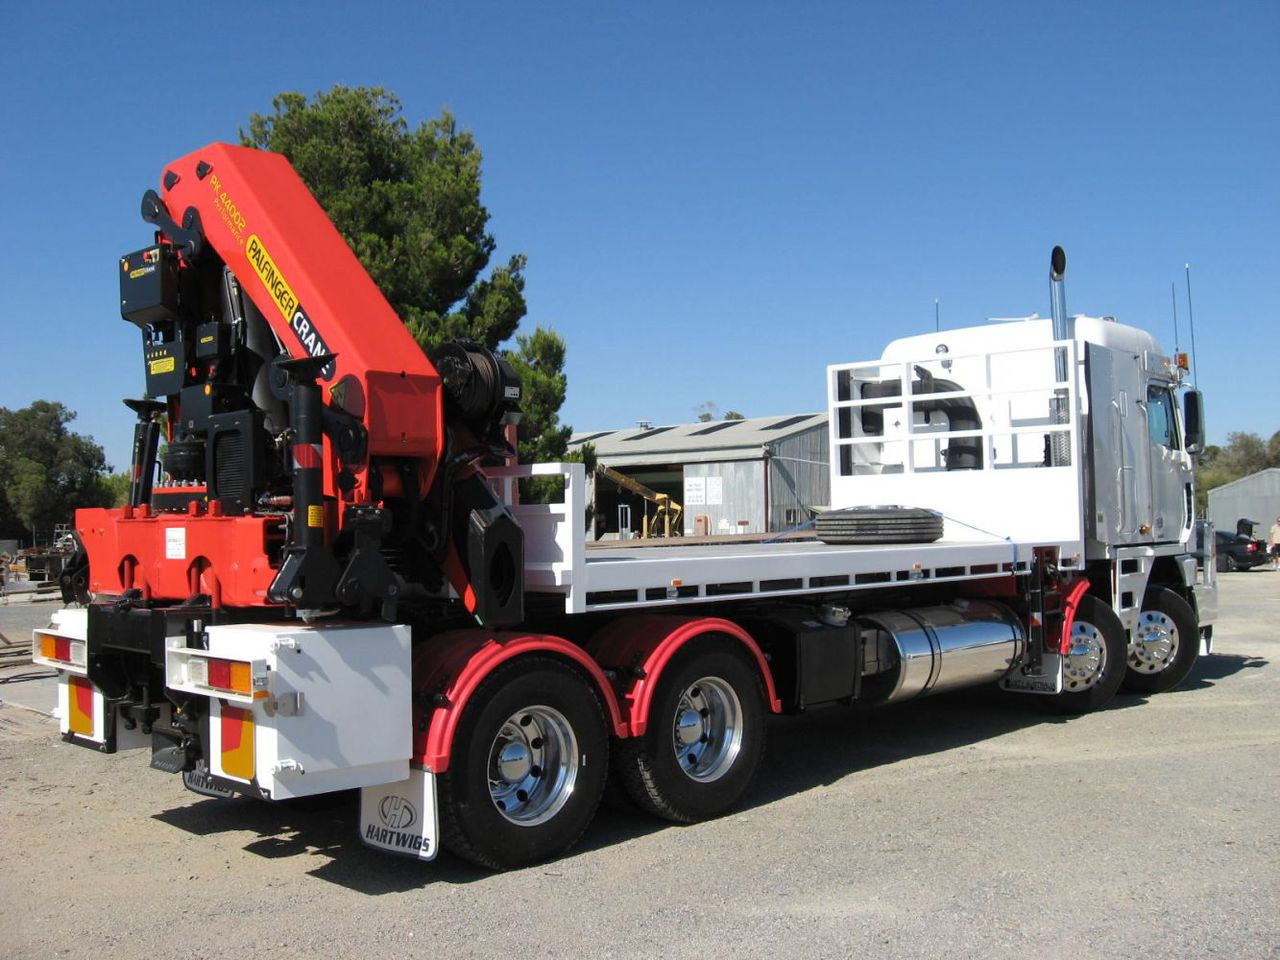 What is a HIAB crane truck and what is its best use?